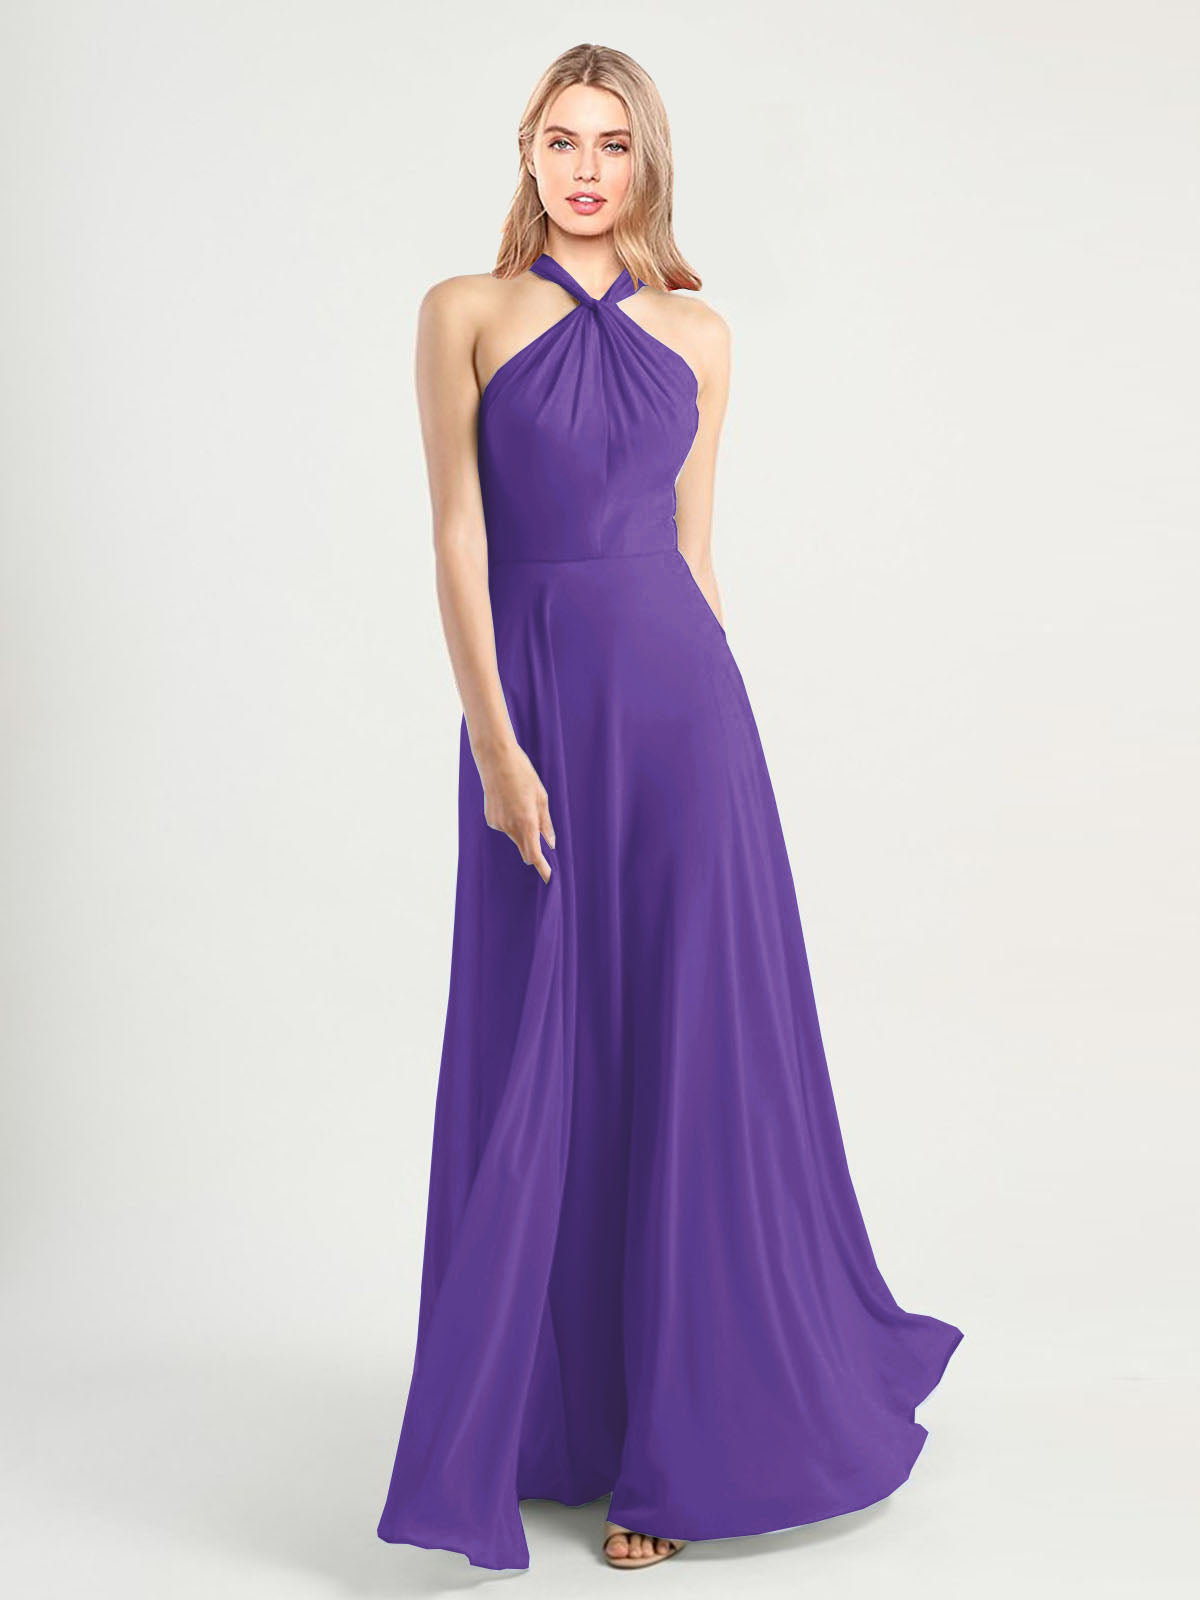 Long A-Line High Neck, Halter Sleeveless Purple Chiffon Bridesmaid Dress Yoli